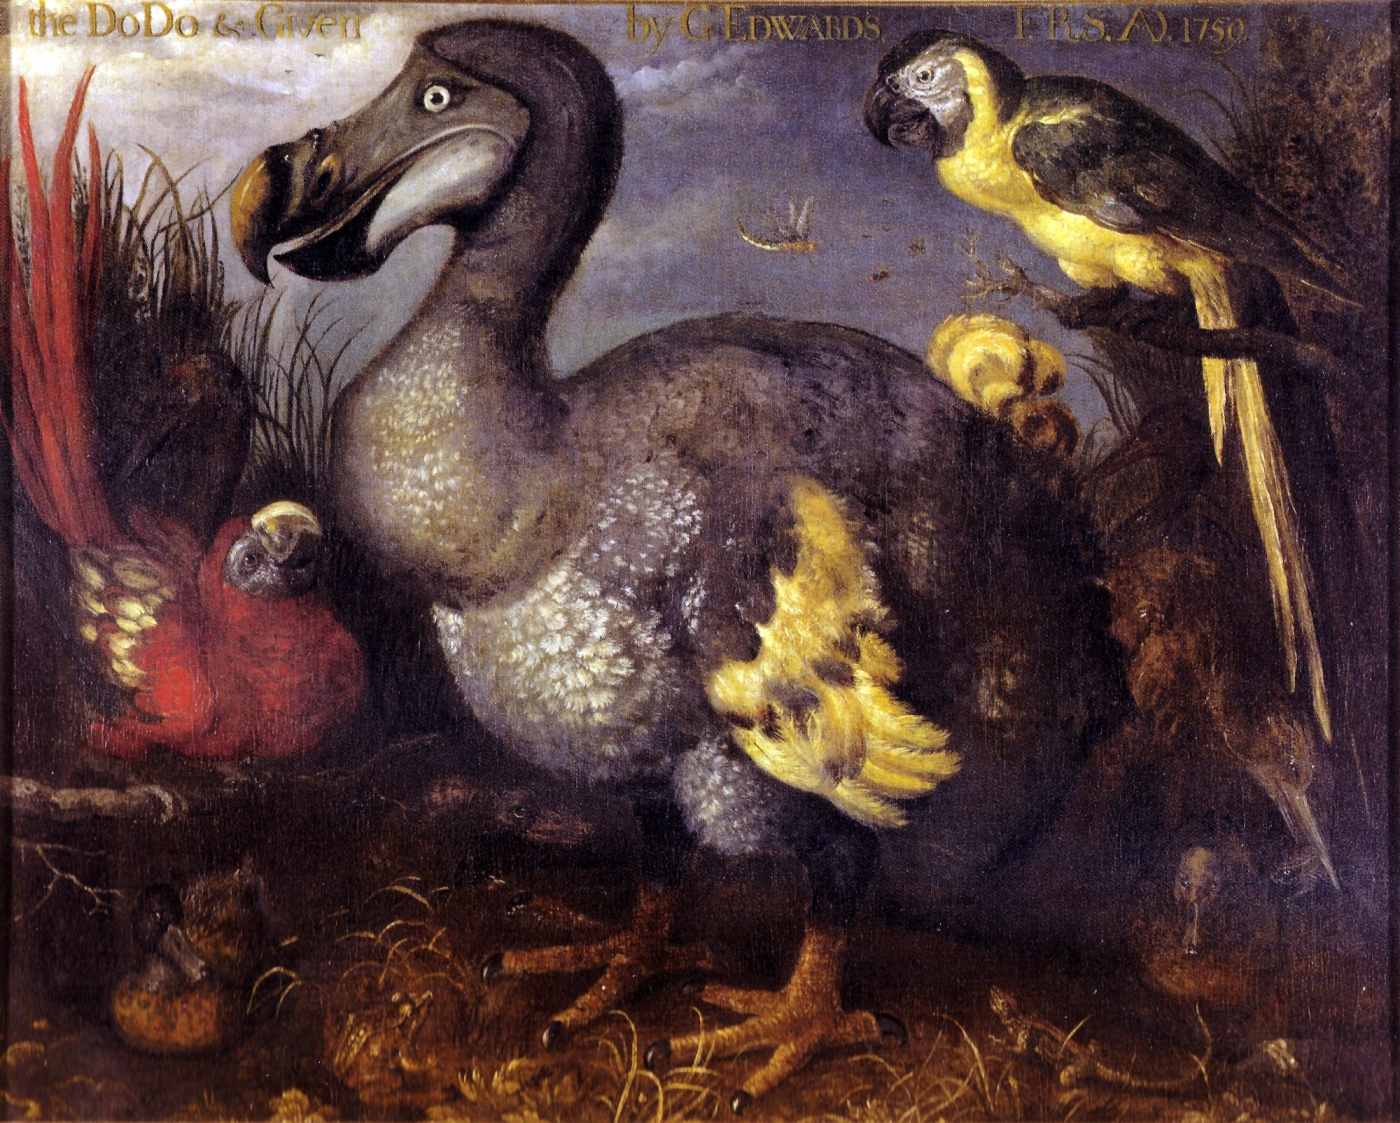 https://commons.wikimedia.org/wiki/File:Edwards%27_Dodo.jpg